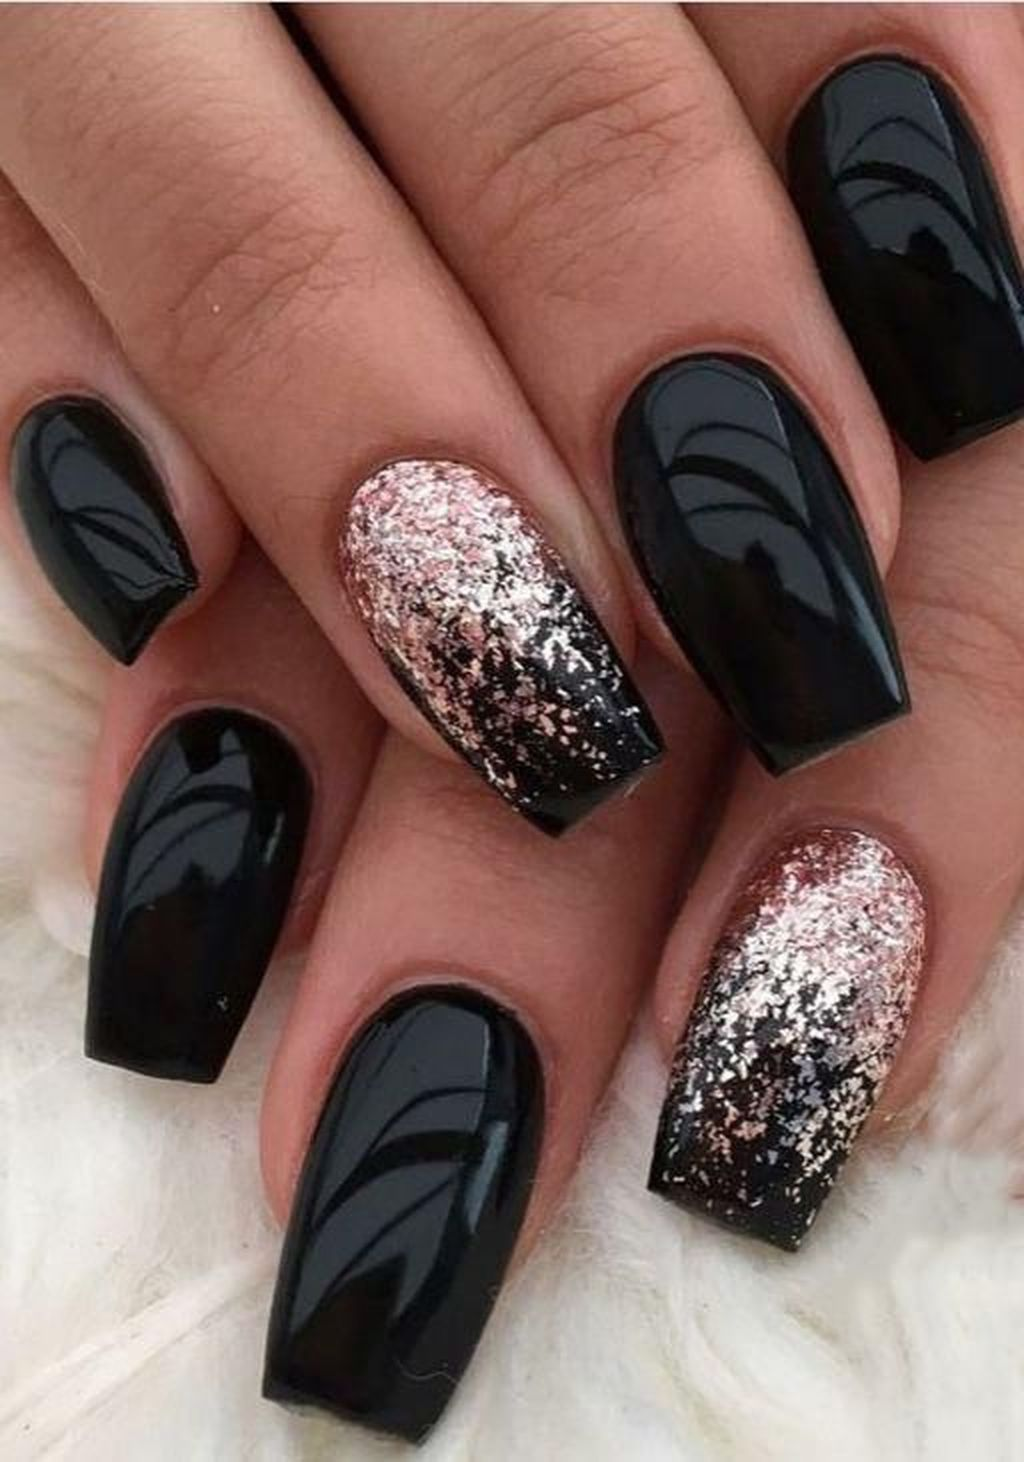 40+ Inexpensive Glitter Nail Designs Ideas To Rock This Year - FASHIONKOE